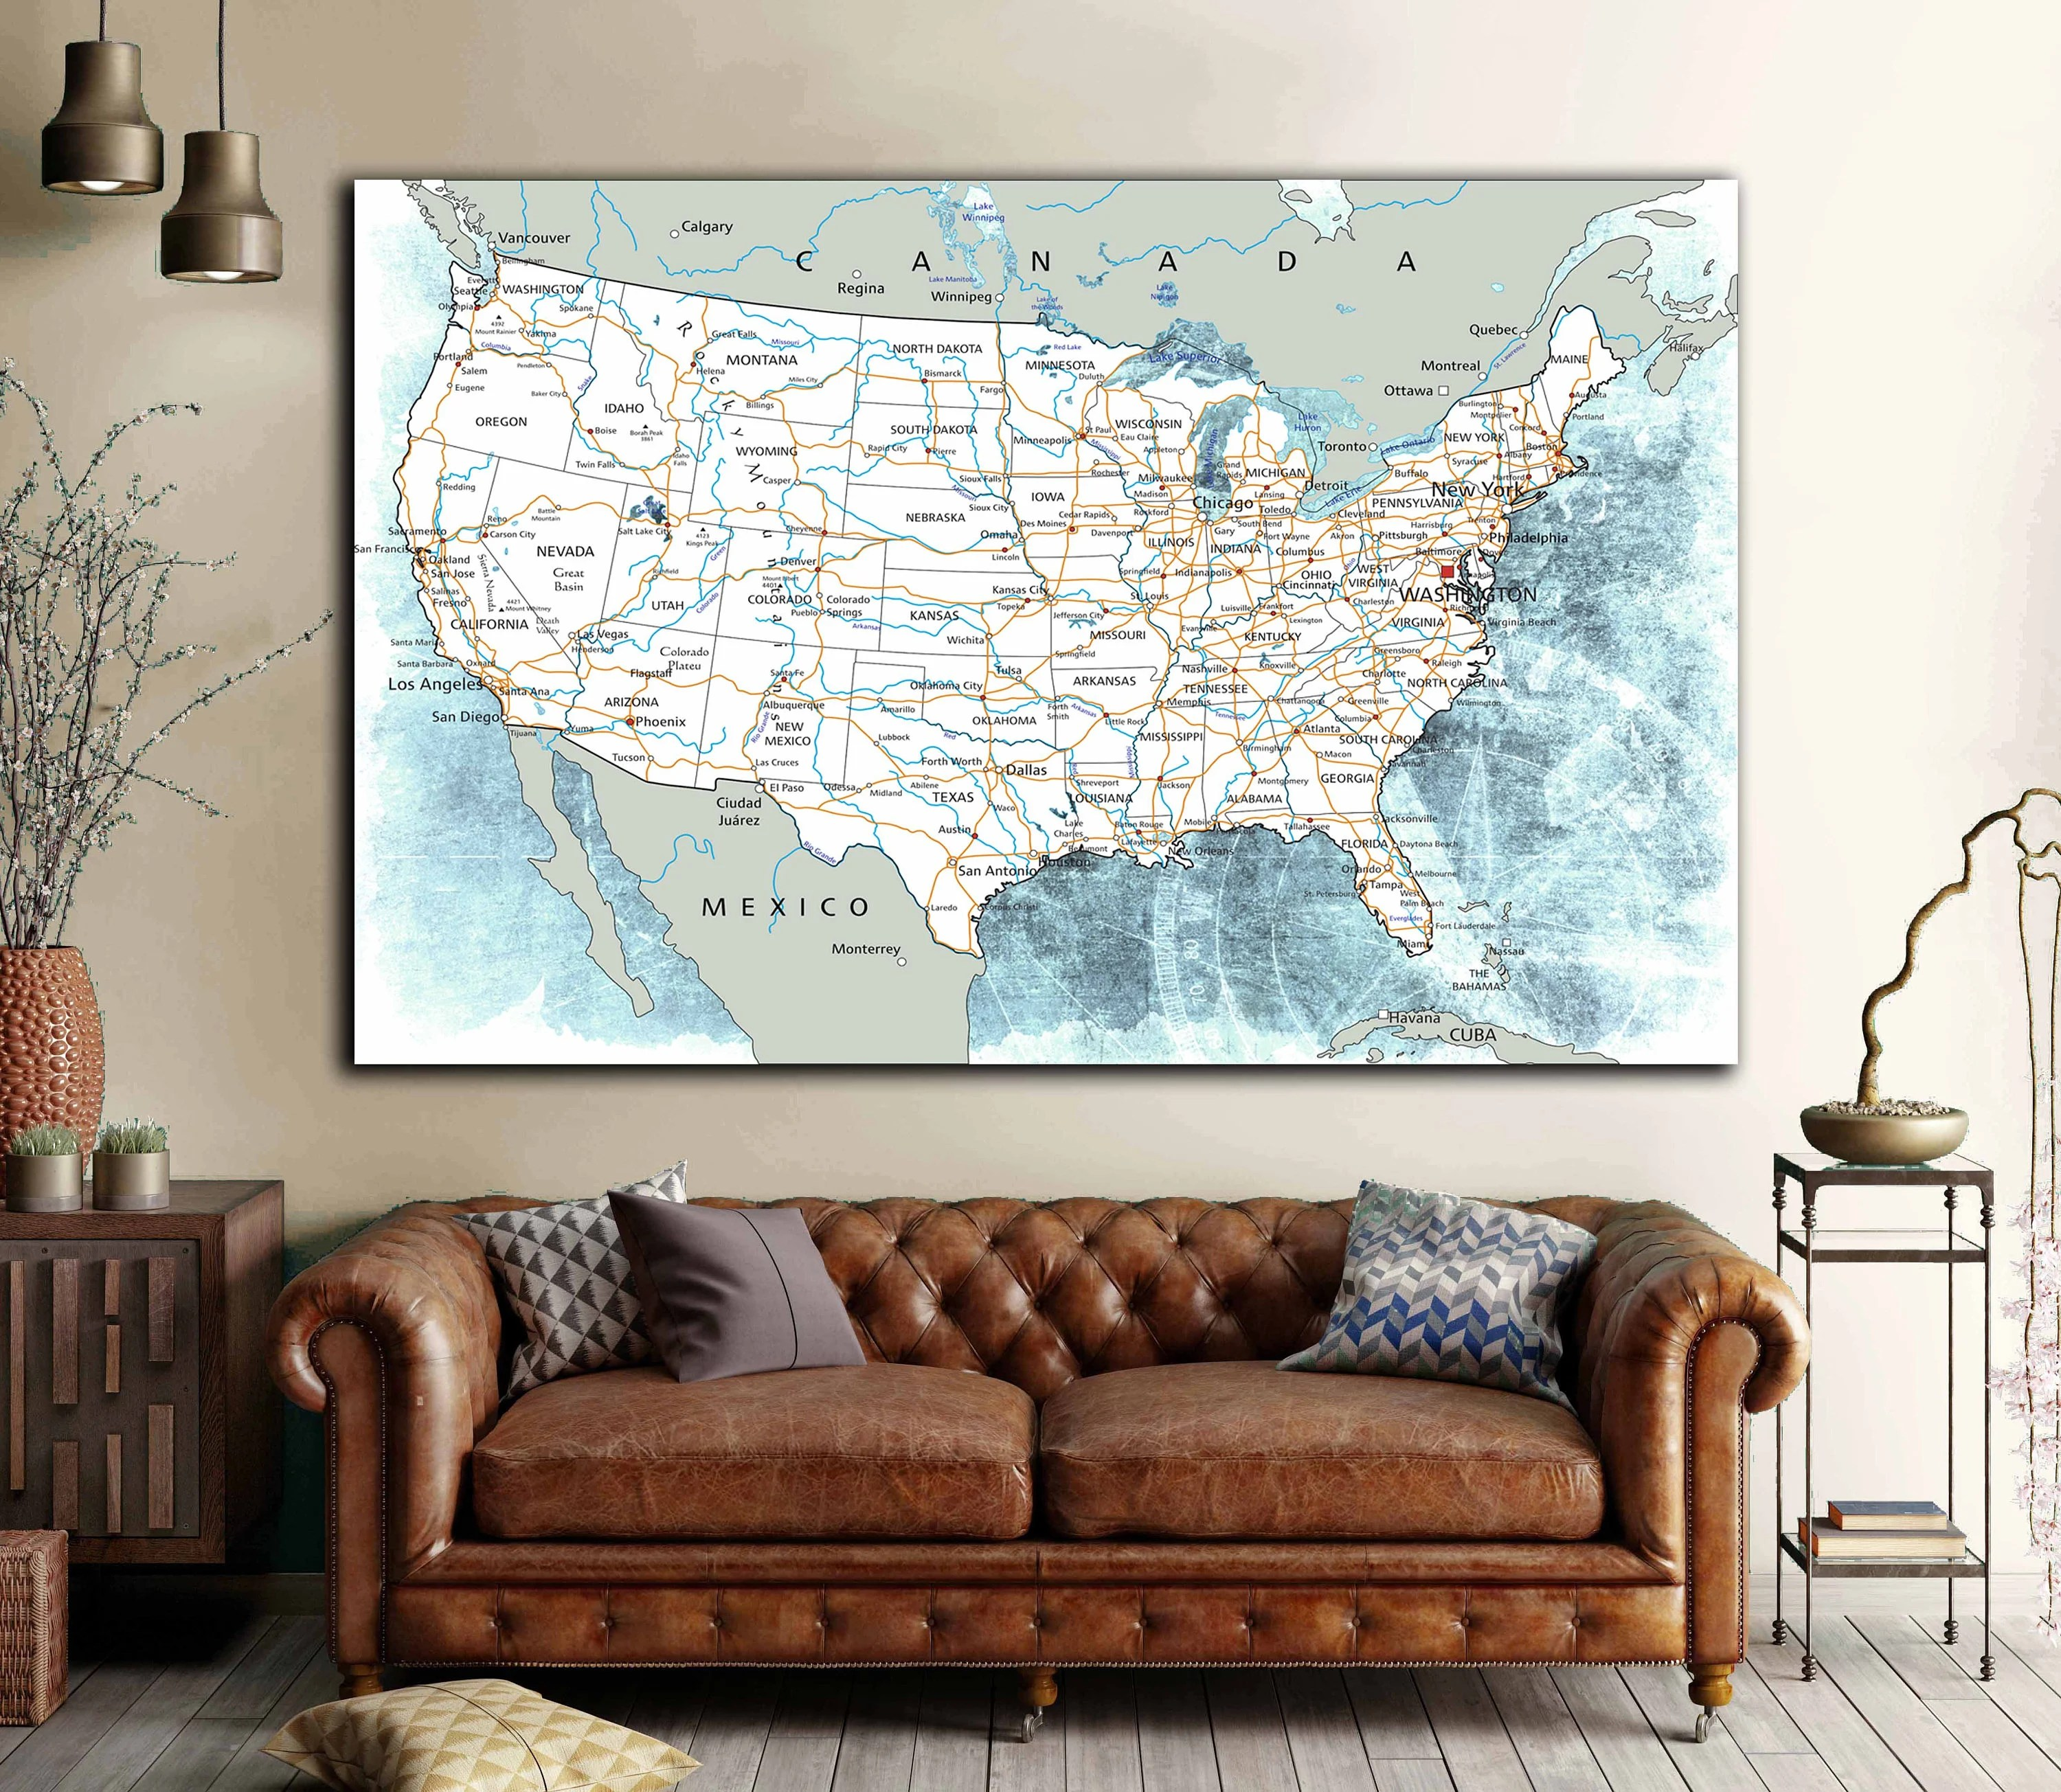 US Road Map Road Trip Map Wall Art Canvas Print Large Us Road Map     US Road Map Road Trip Map Wall Art Canvas Print Large Us Road Map Canvas  Print Us Road Map Print US Travel Map Us Map Art Us Road Push Pin